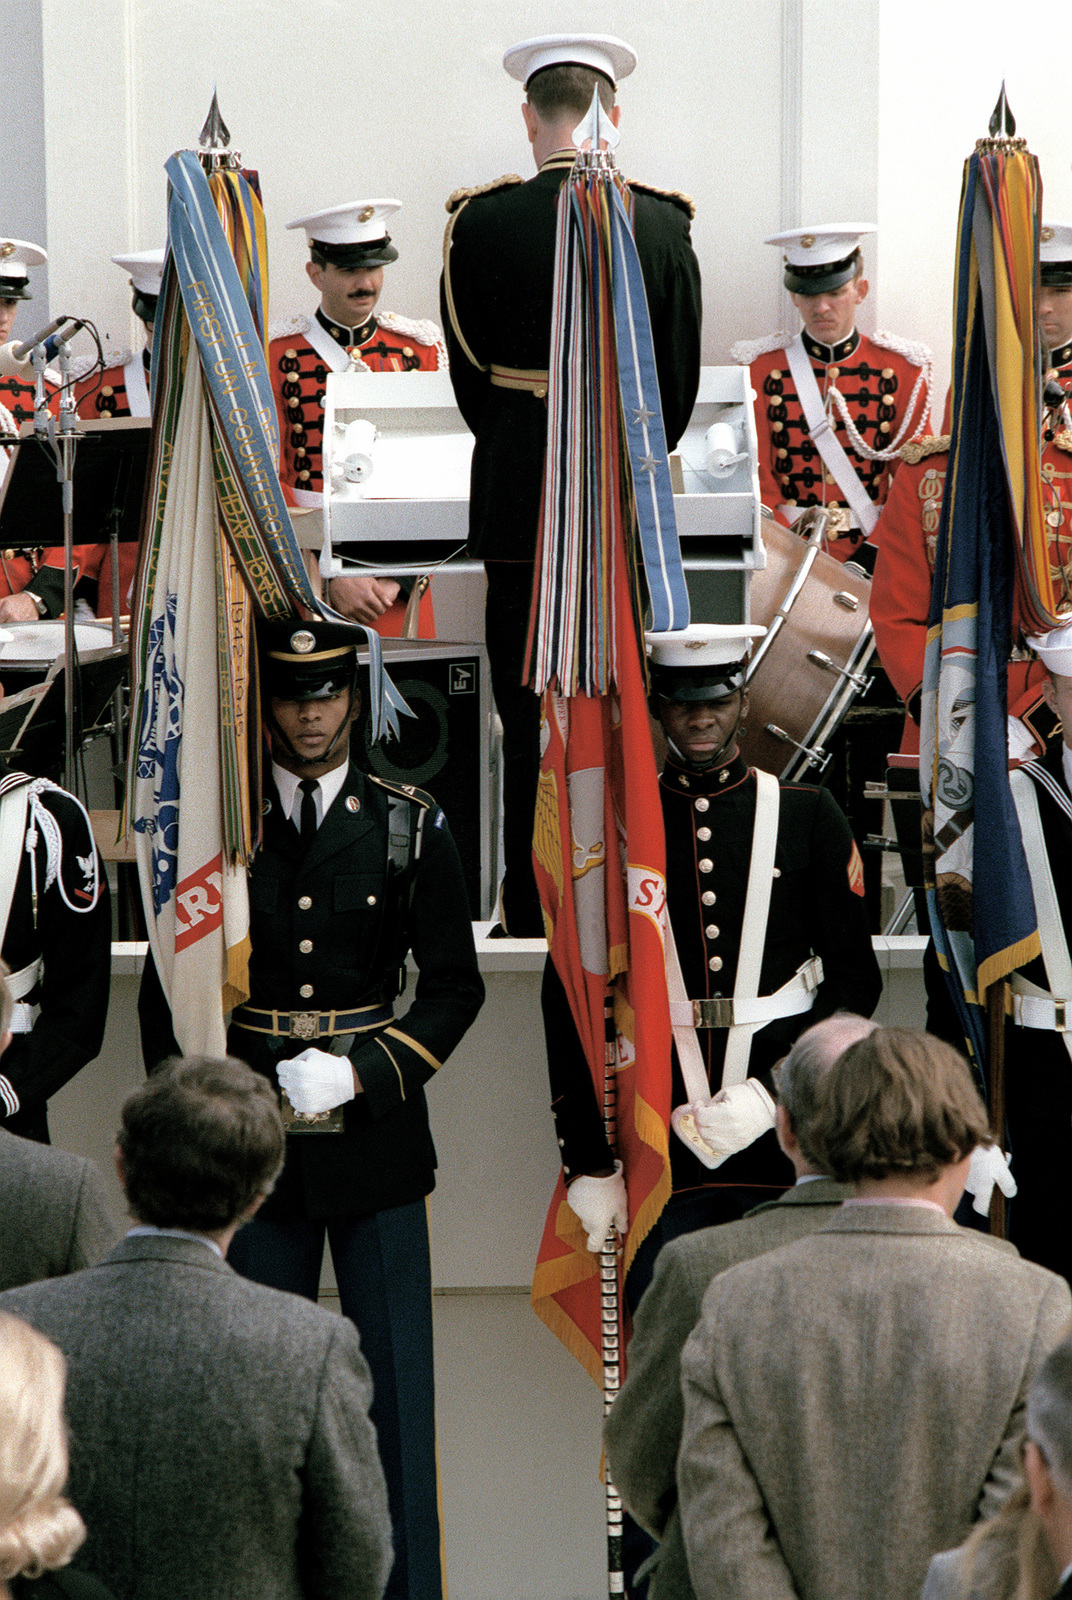 The Army and Marine Corps members of the all-service color guard